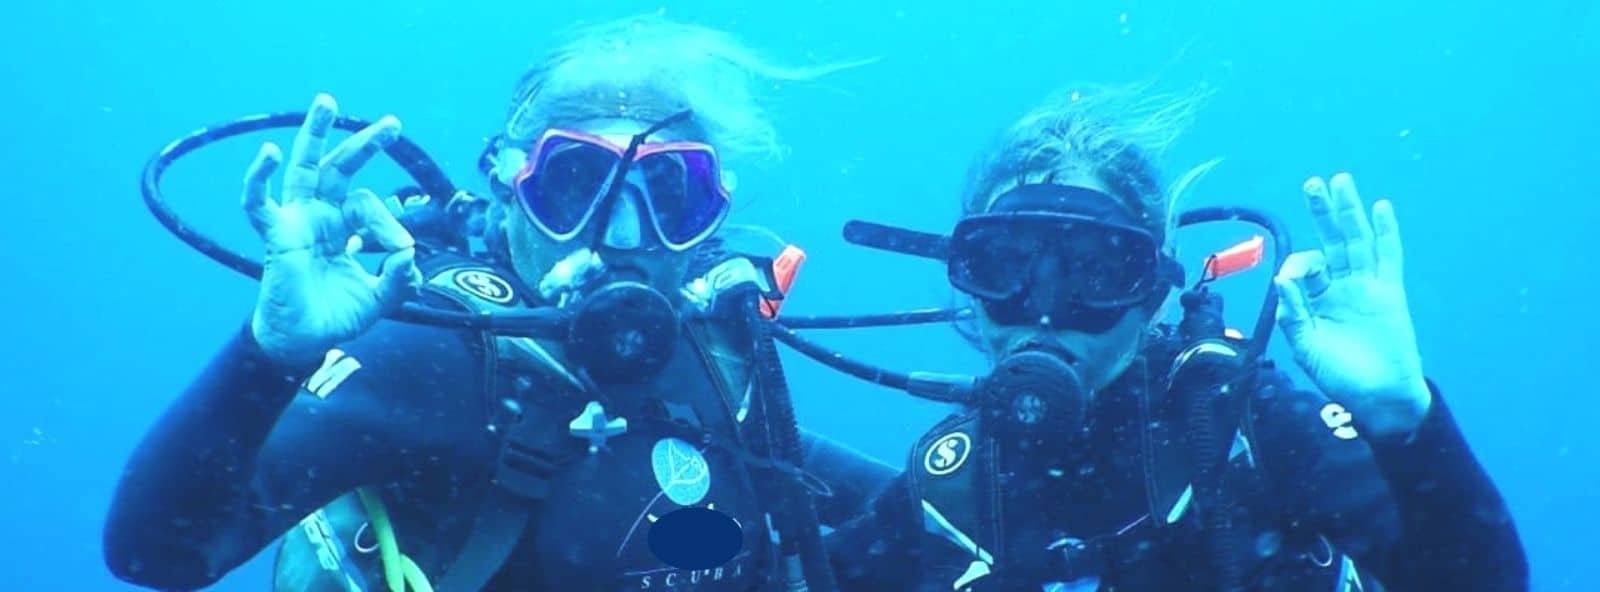 Scuba Diving Buddies - Close up of faces of two Women under water Scuba Diving - showing the universal all OK sign